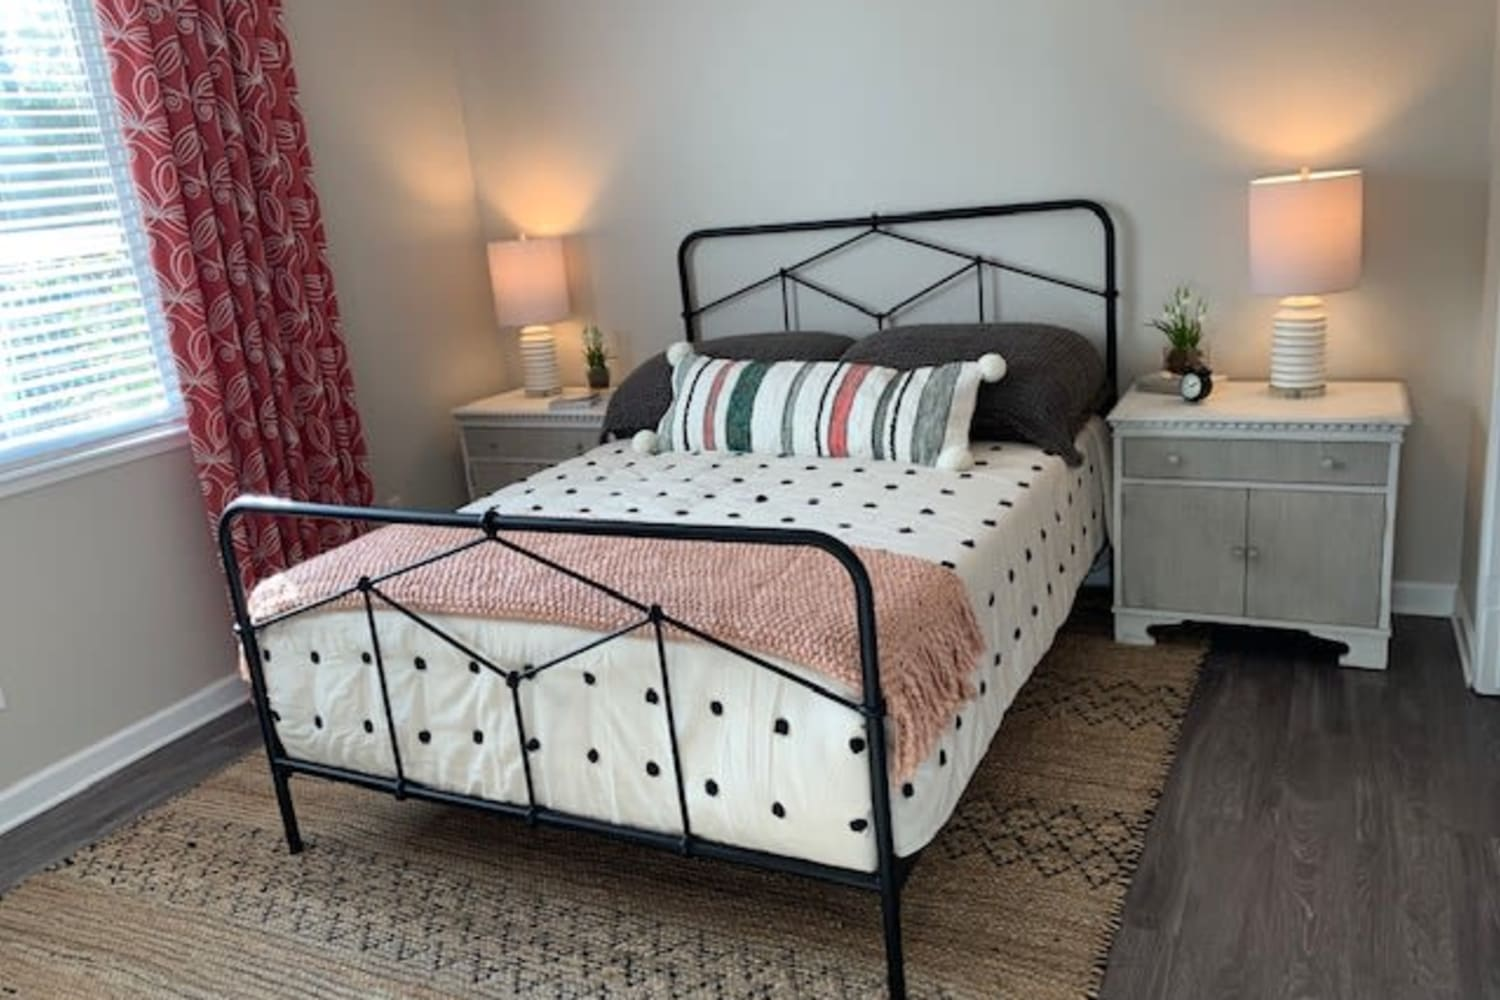 Cotton Wood Apartments offers a Beautiful Bedroom in Dublin, California